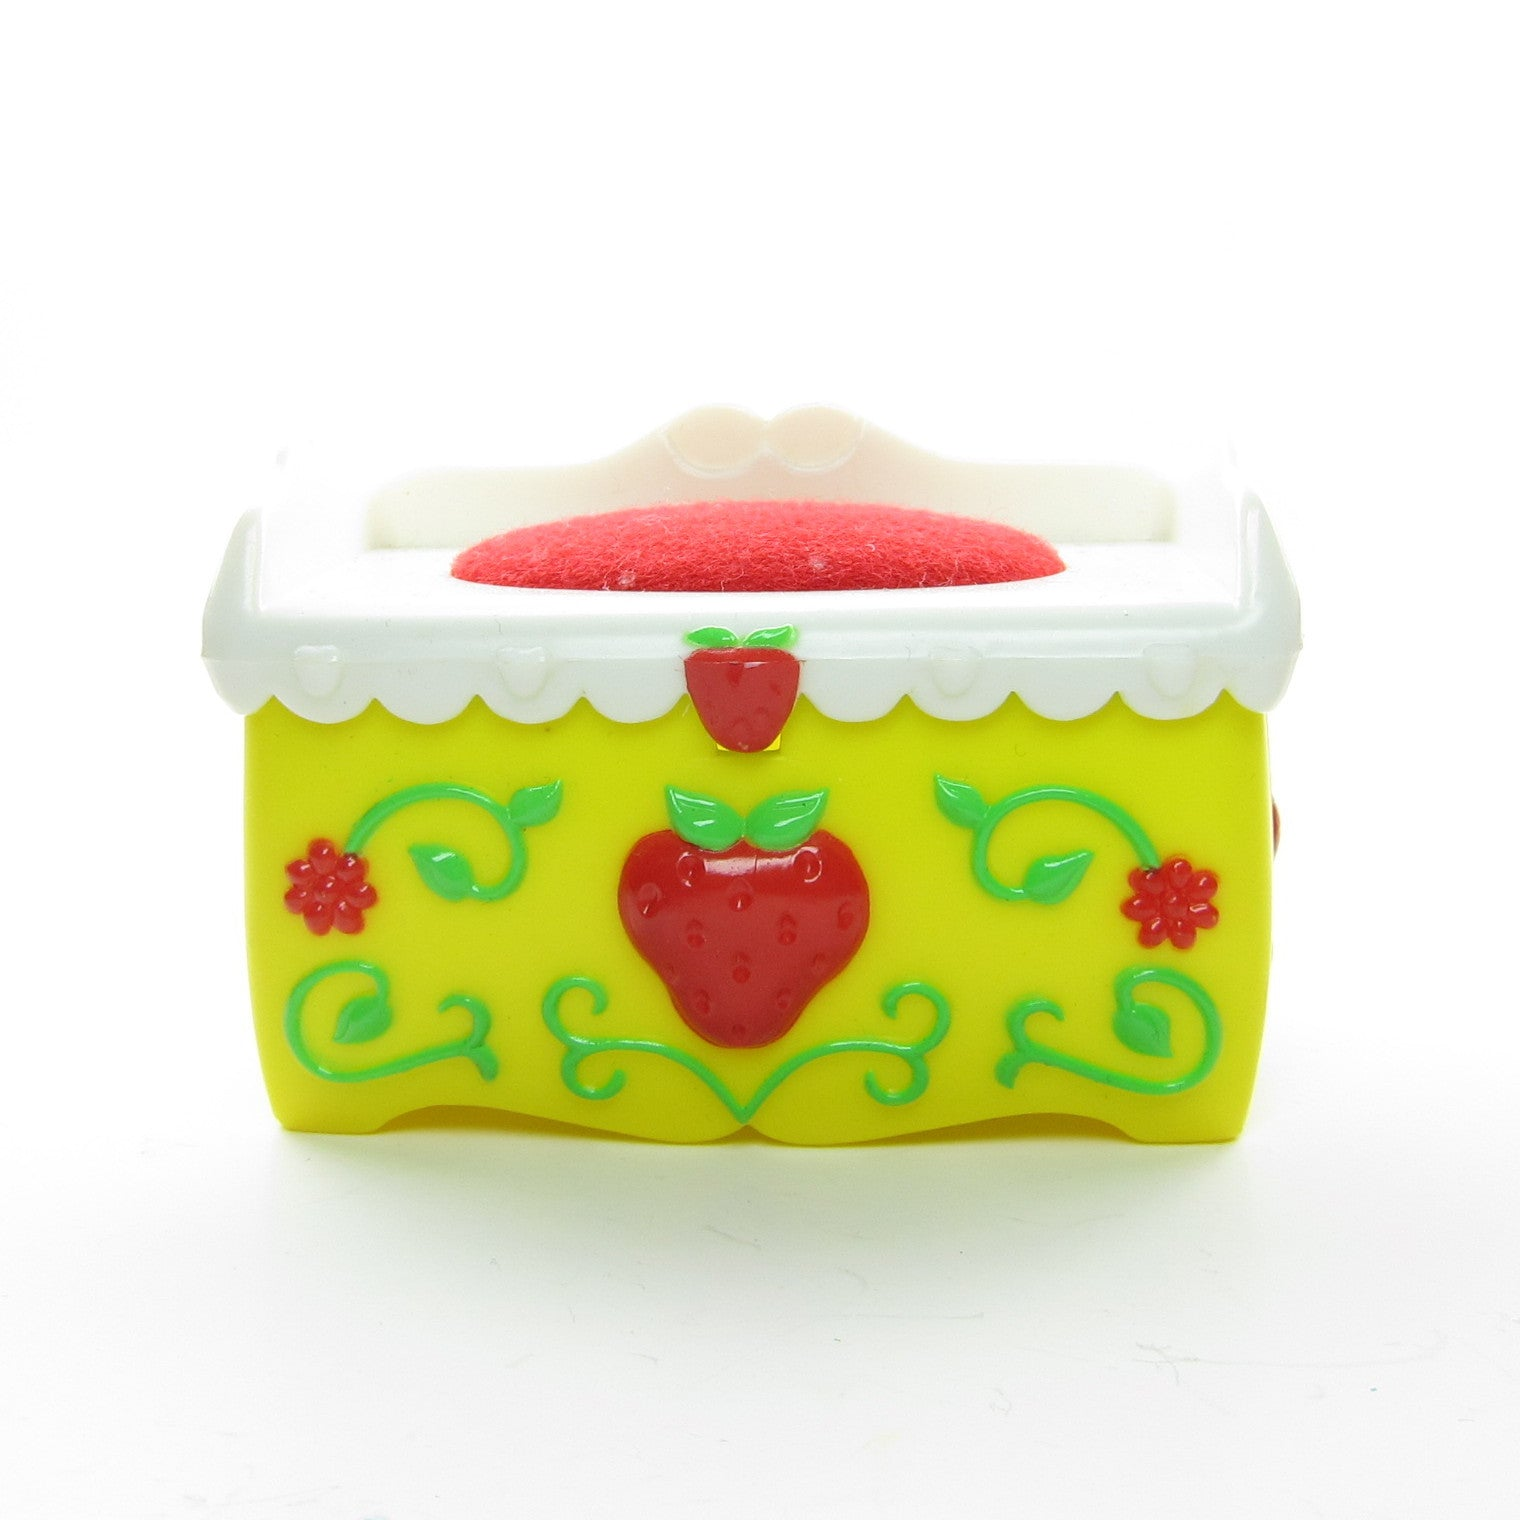 Toy Chest for Strawberry Shortcake Berry Happy Home dollhouse